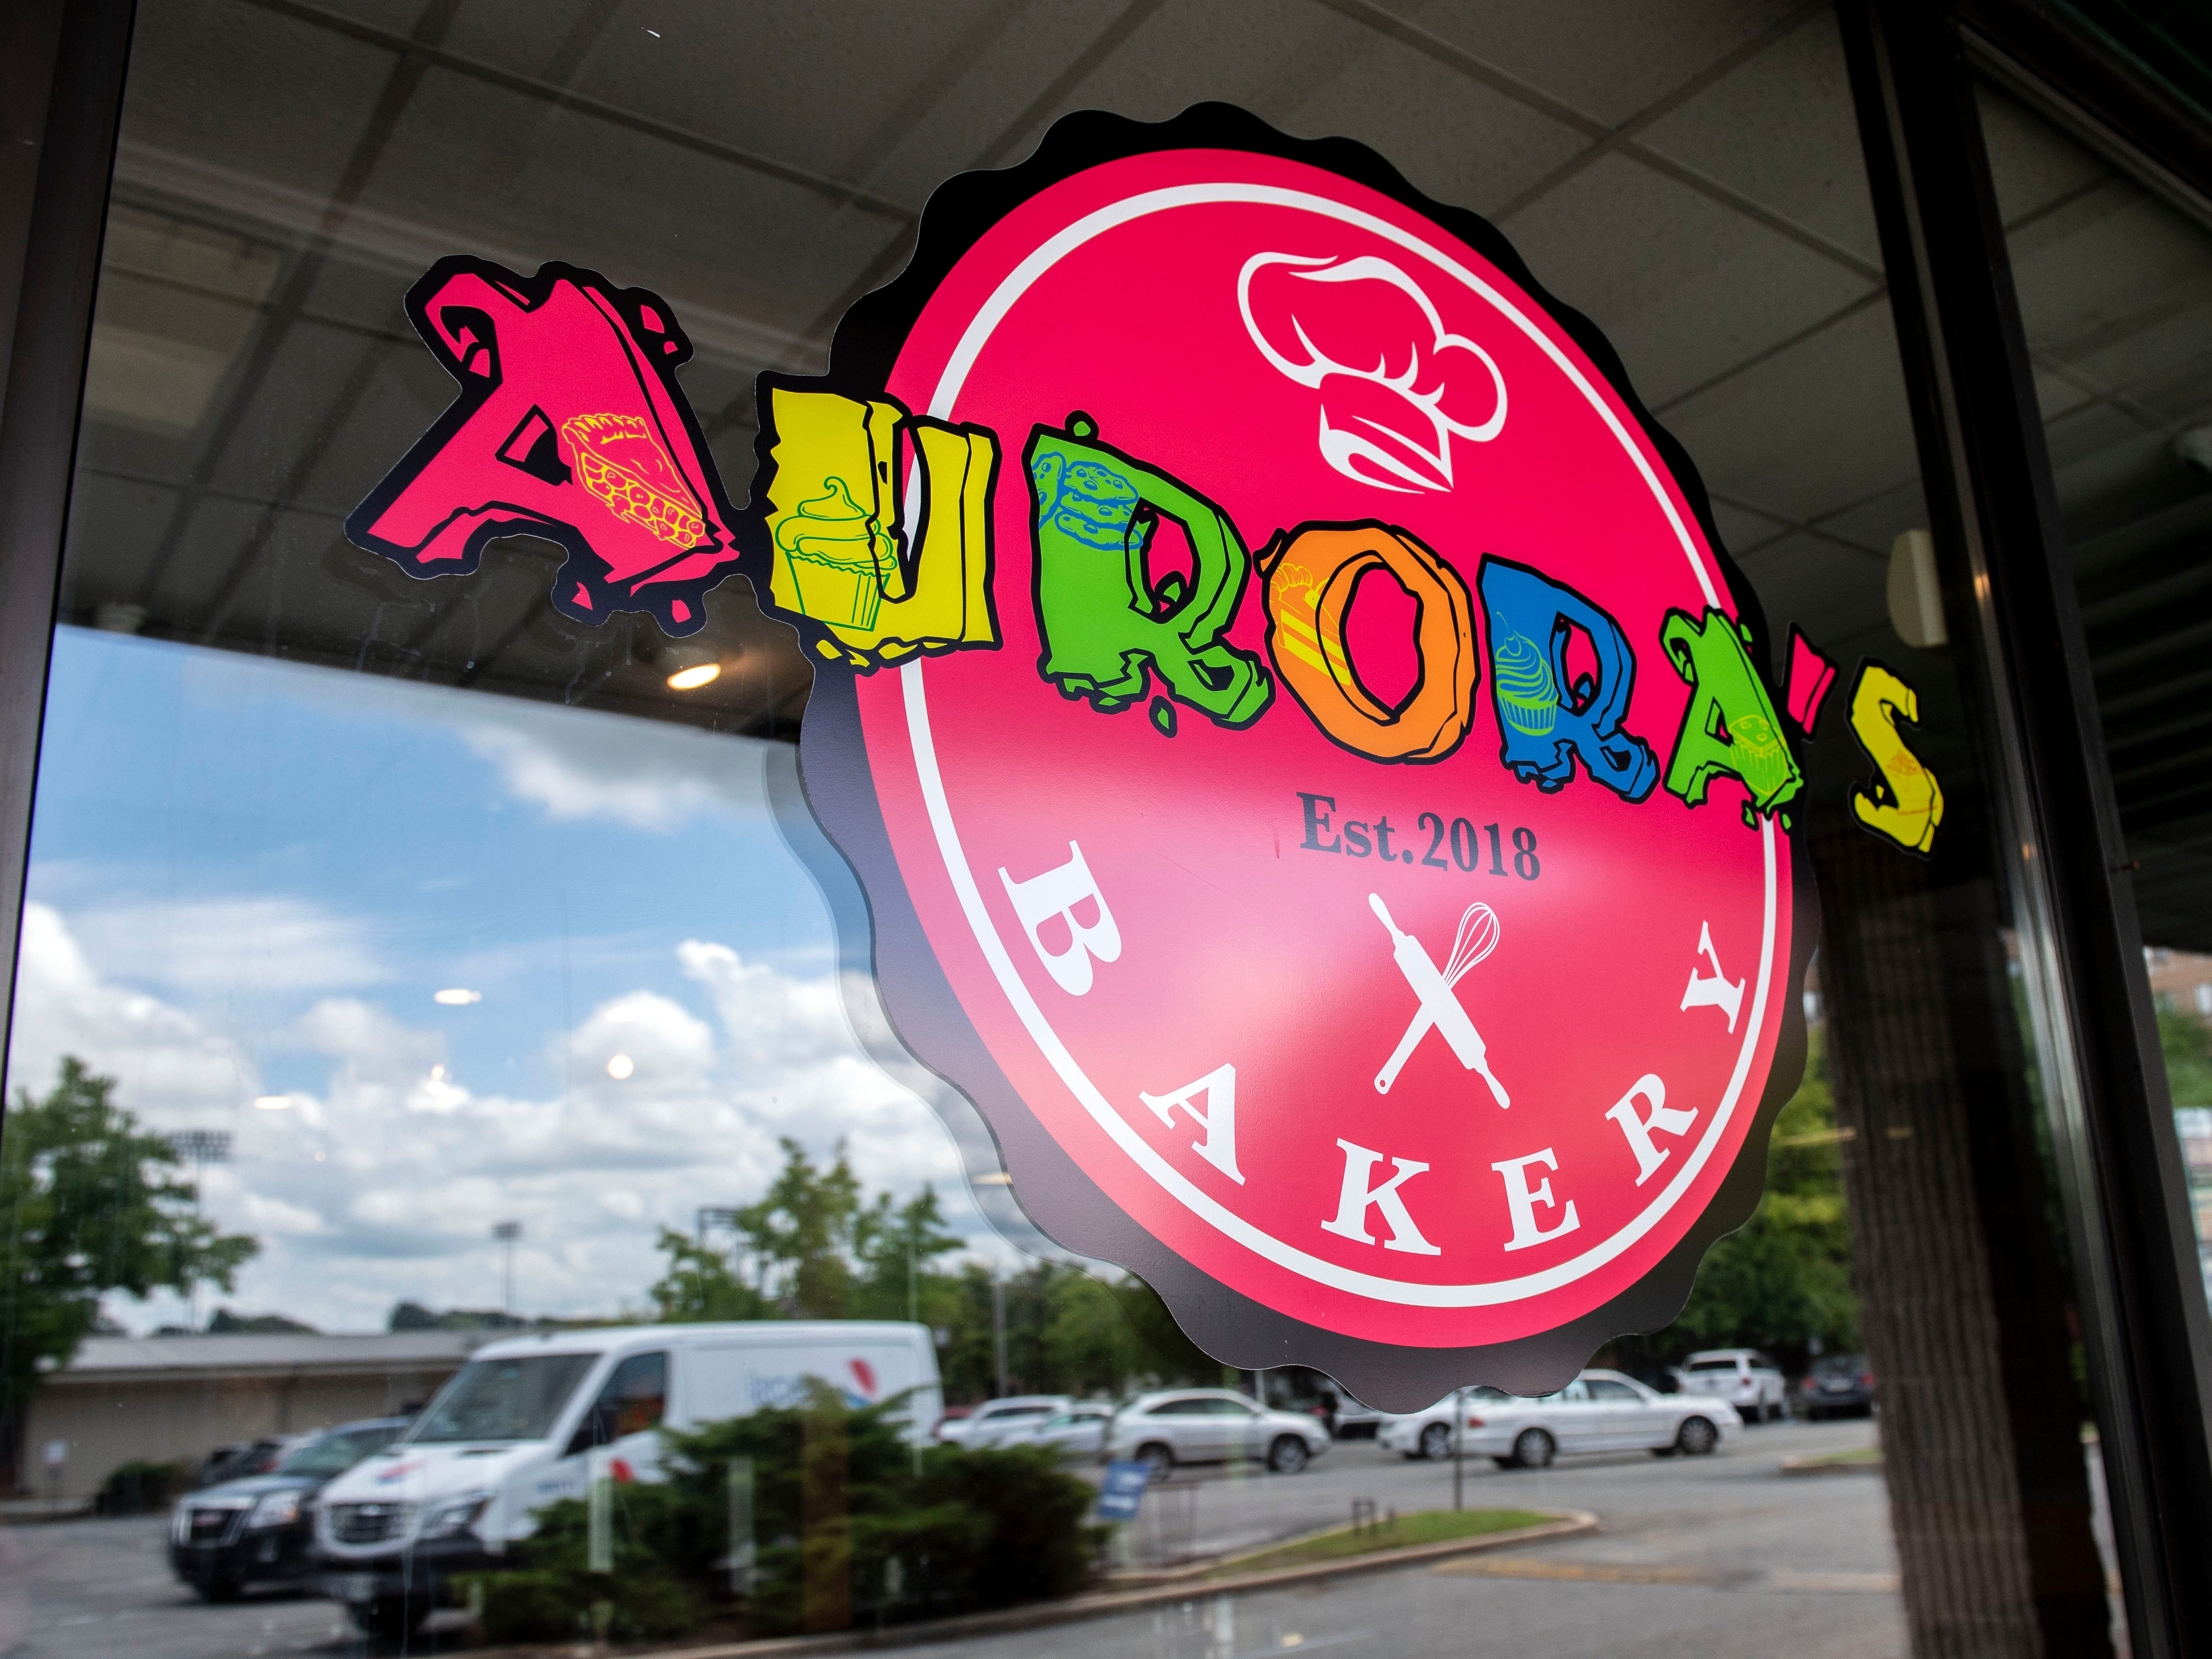 Aurora's Bakery opened in the shopping center between North Duke and North Queen streets near the C-Town Supermarket, where the former Stadium Grille once was. It's owned and operated by Mexican immigrants Anselmo Arrieta and his wife Guadelupe Rosete. The pair met in New York City, and moved to York in 2002 to 'chase the American Dream.'